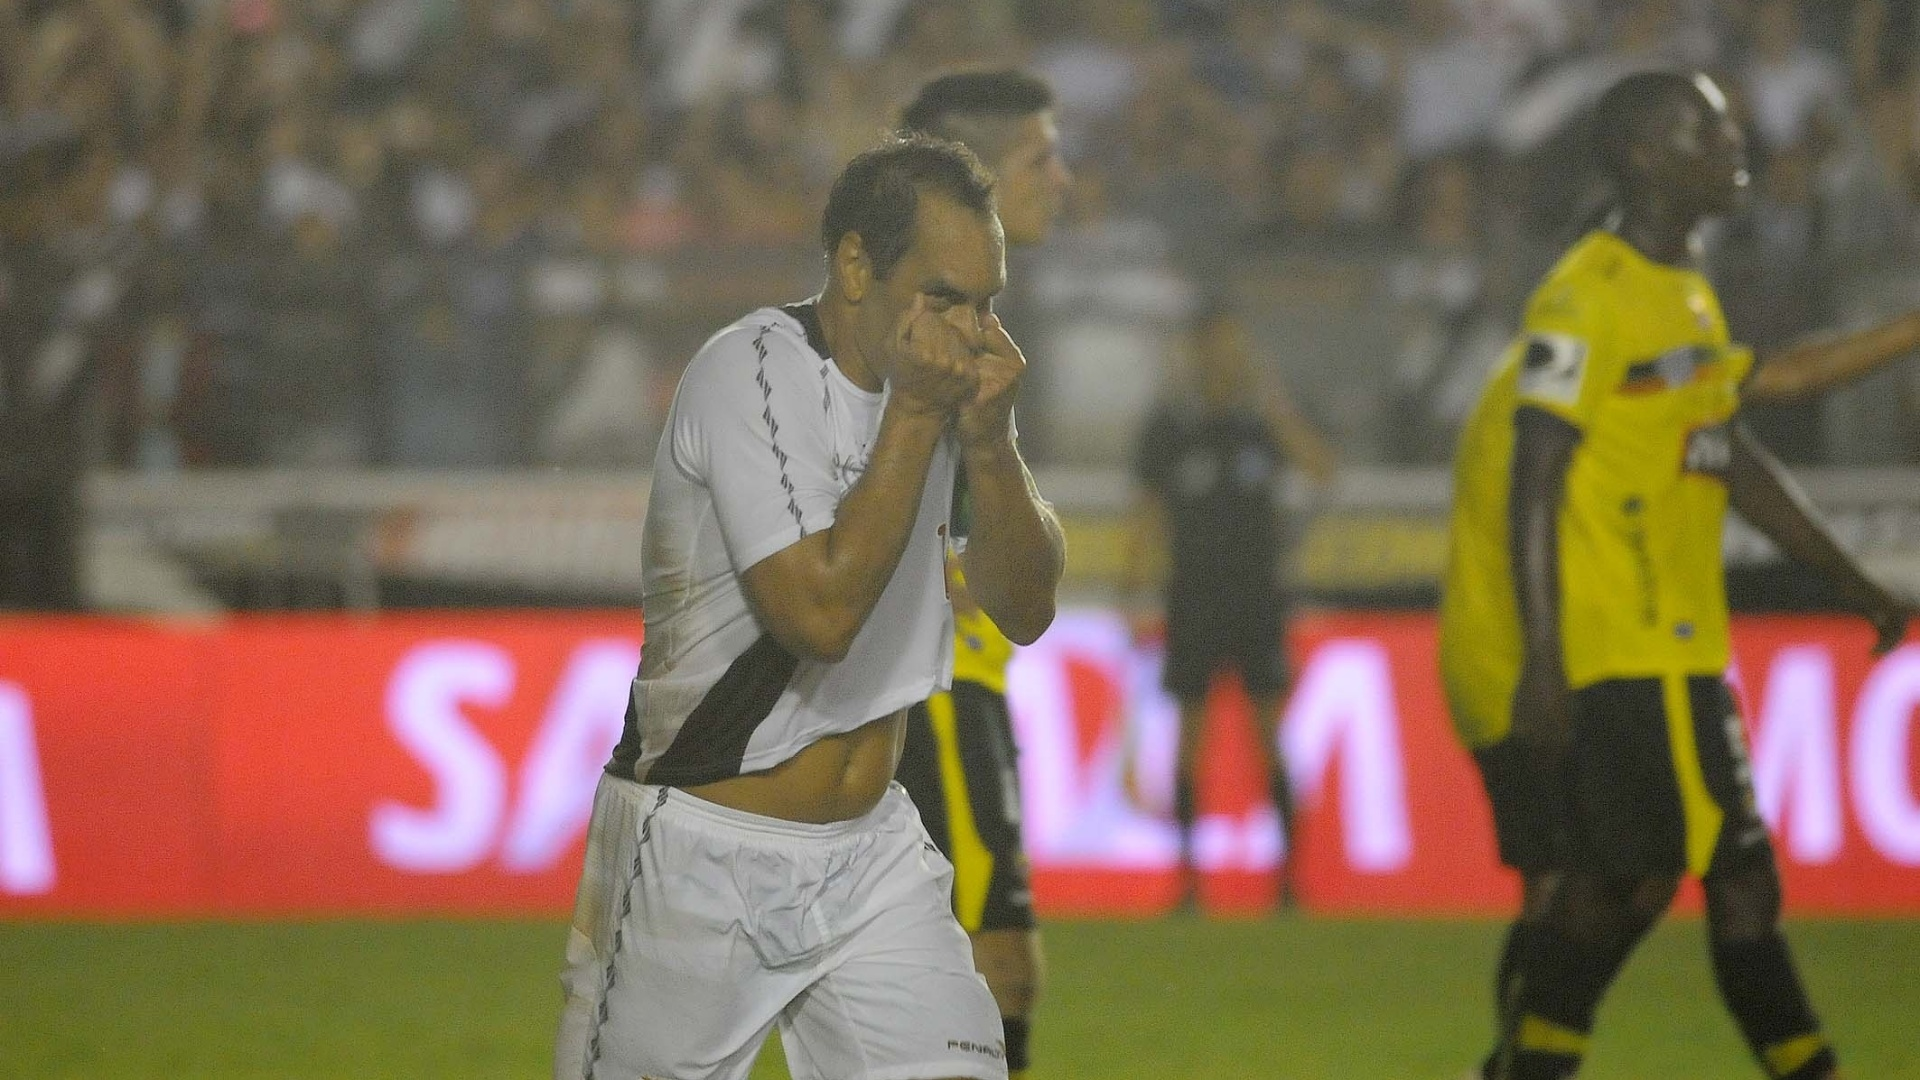 Edmundo comemora depois de marcar no jogo de despedida pelo Vasco, diante do Barcelona (EQU)